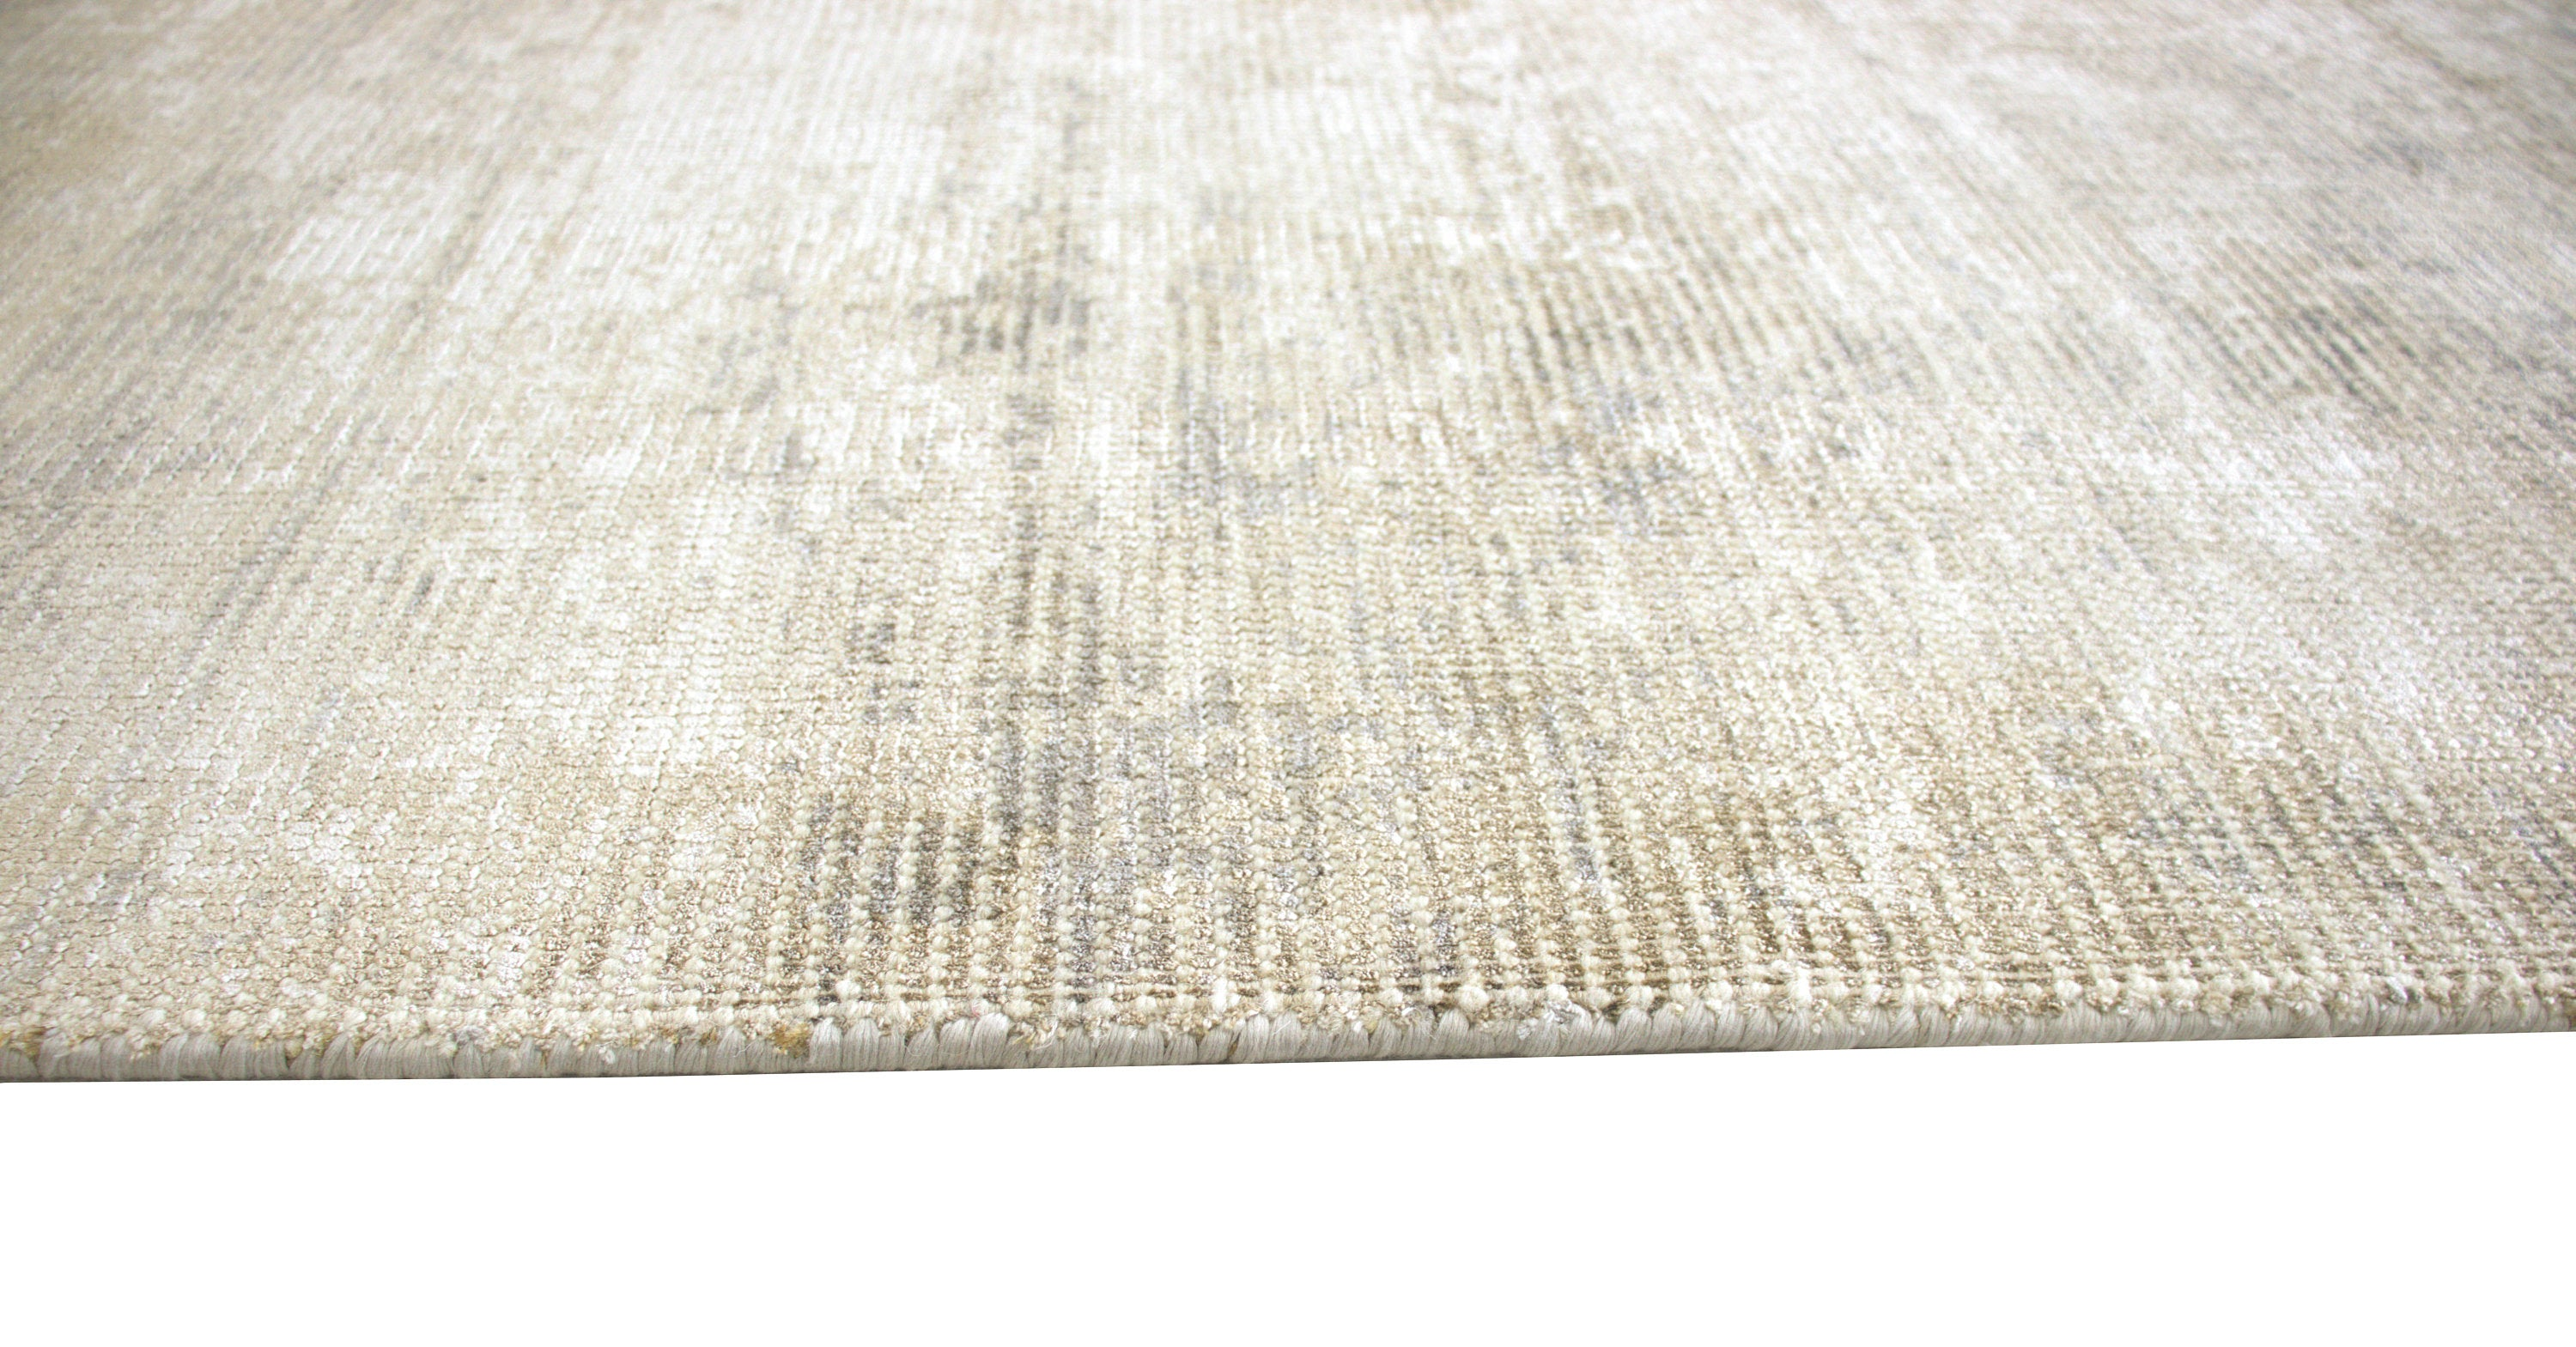 "Beige Hand Knotted area rug 5'3"" X 7'7"" ≡ Large Turkey Faded Area Rug≡Rustic antique Decor ≡decorative rug ≡ Turkish Faded Rug  DN17436"